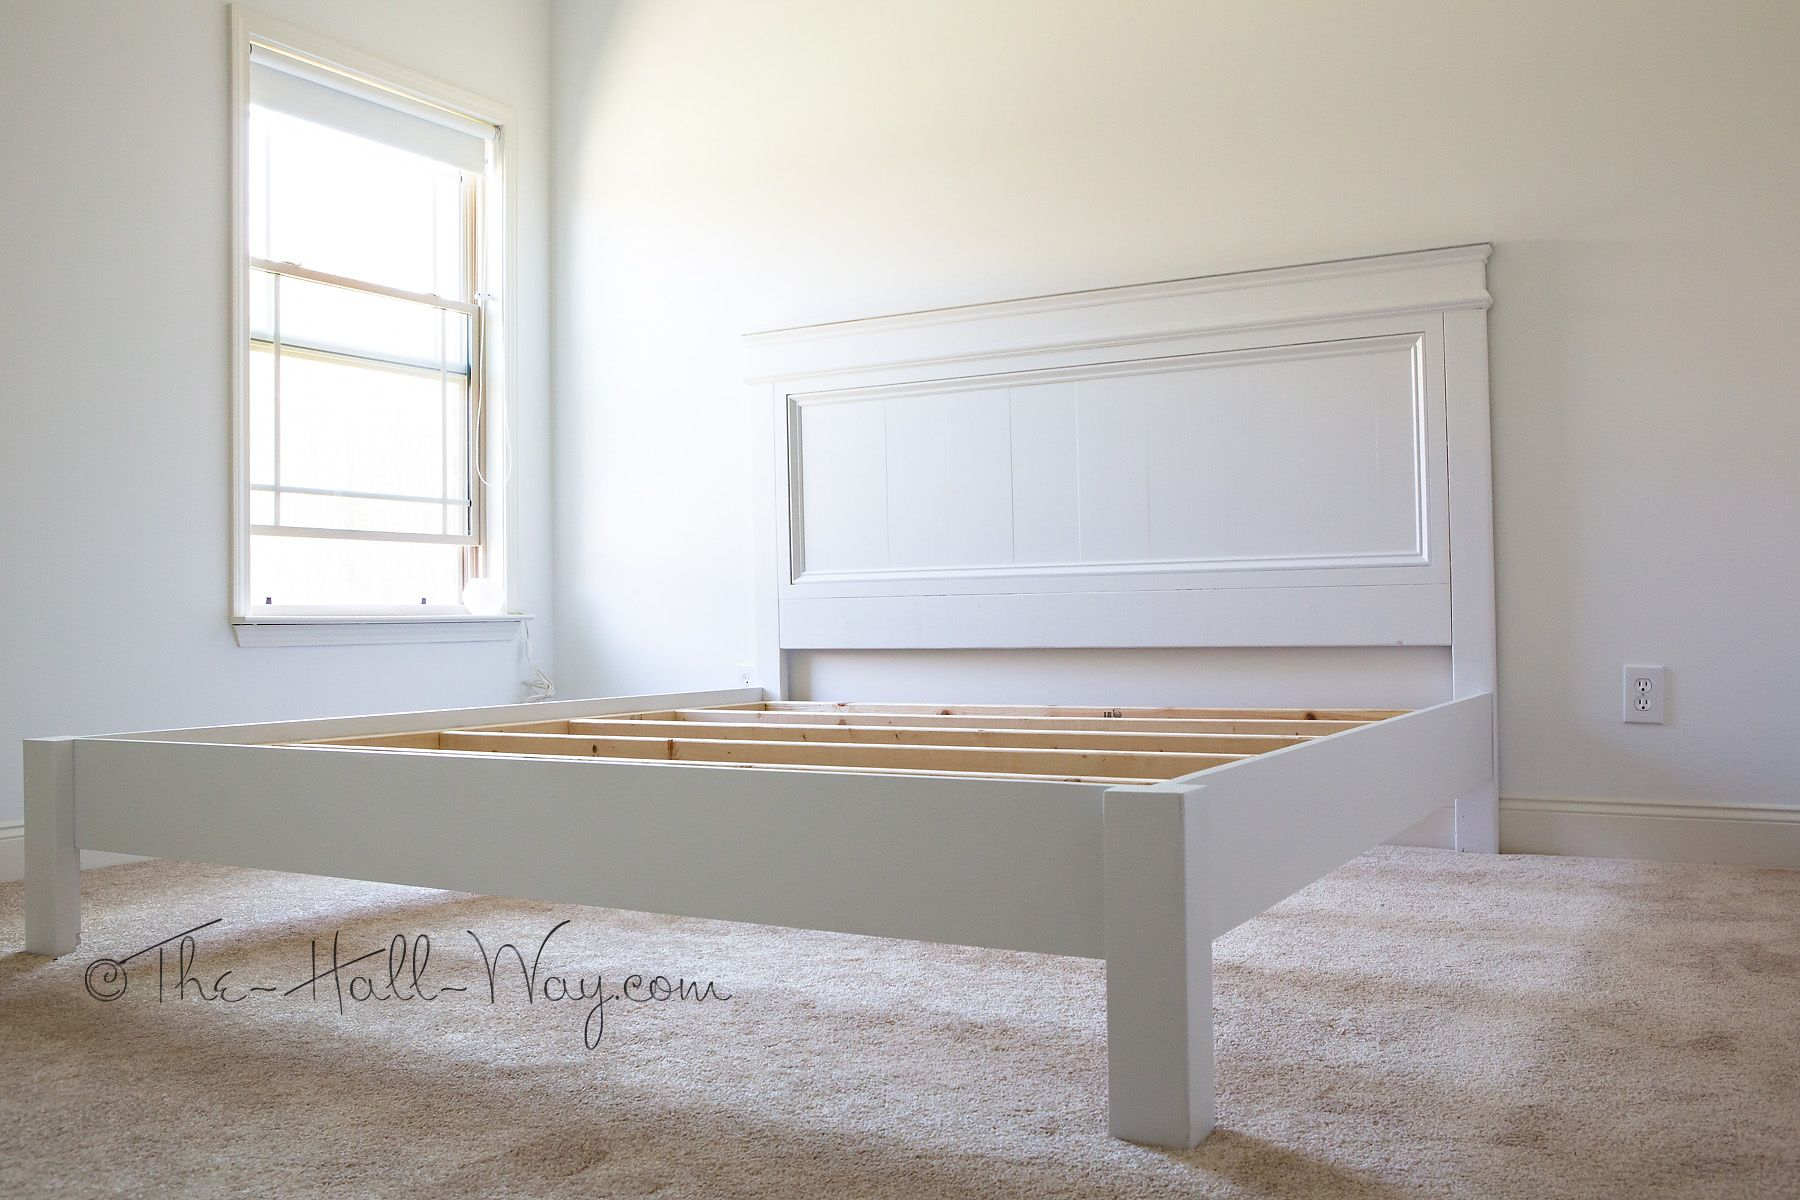 Designs for beds wood bed frame designs wood bed frame - King Size Fancy Farmhouse Bed Free Plans From Ana White